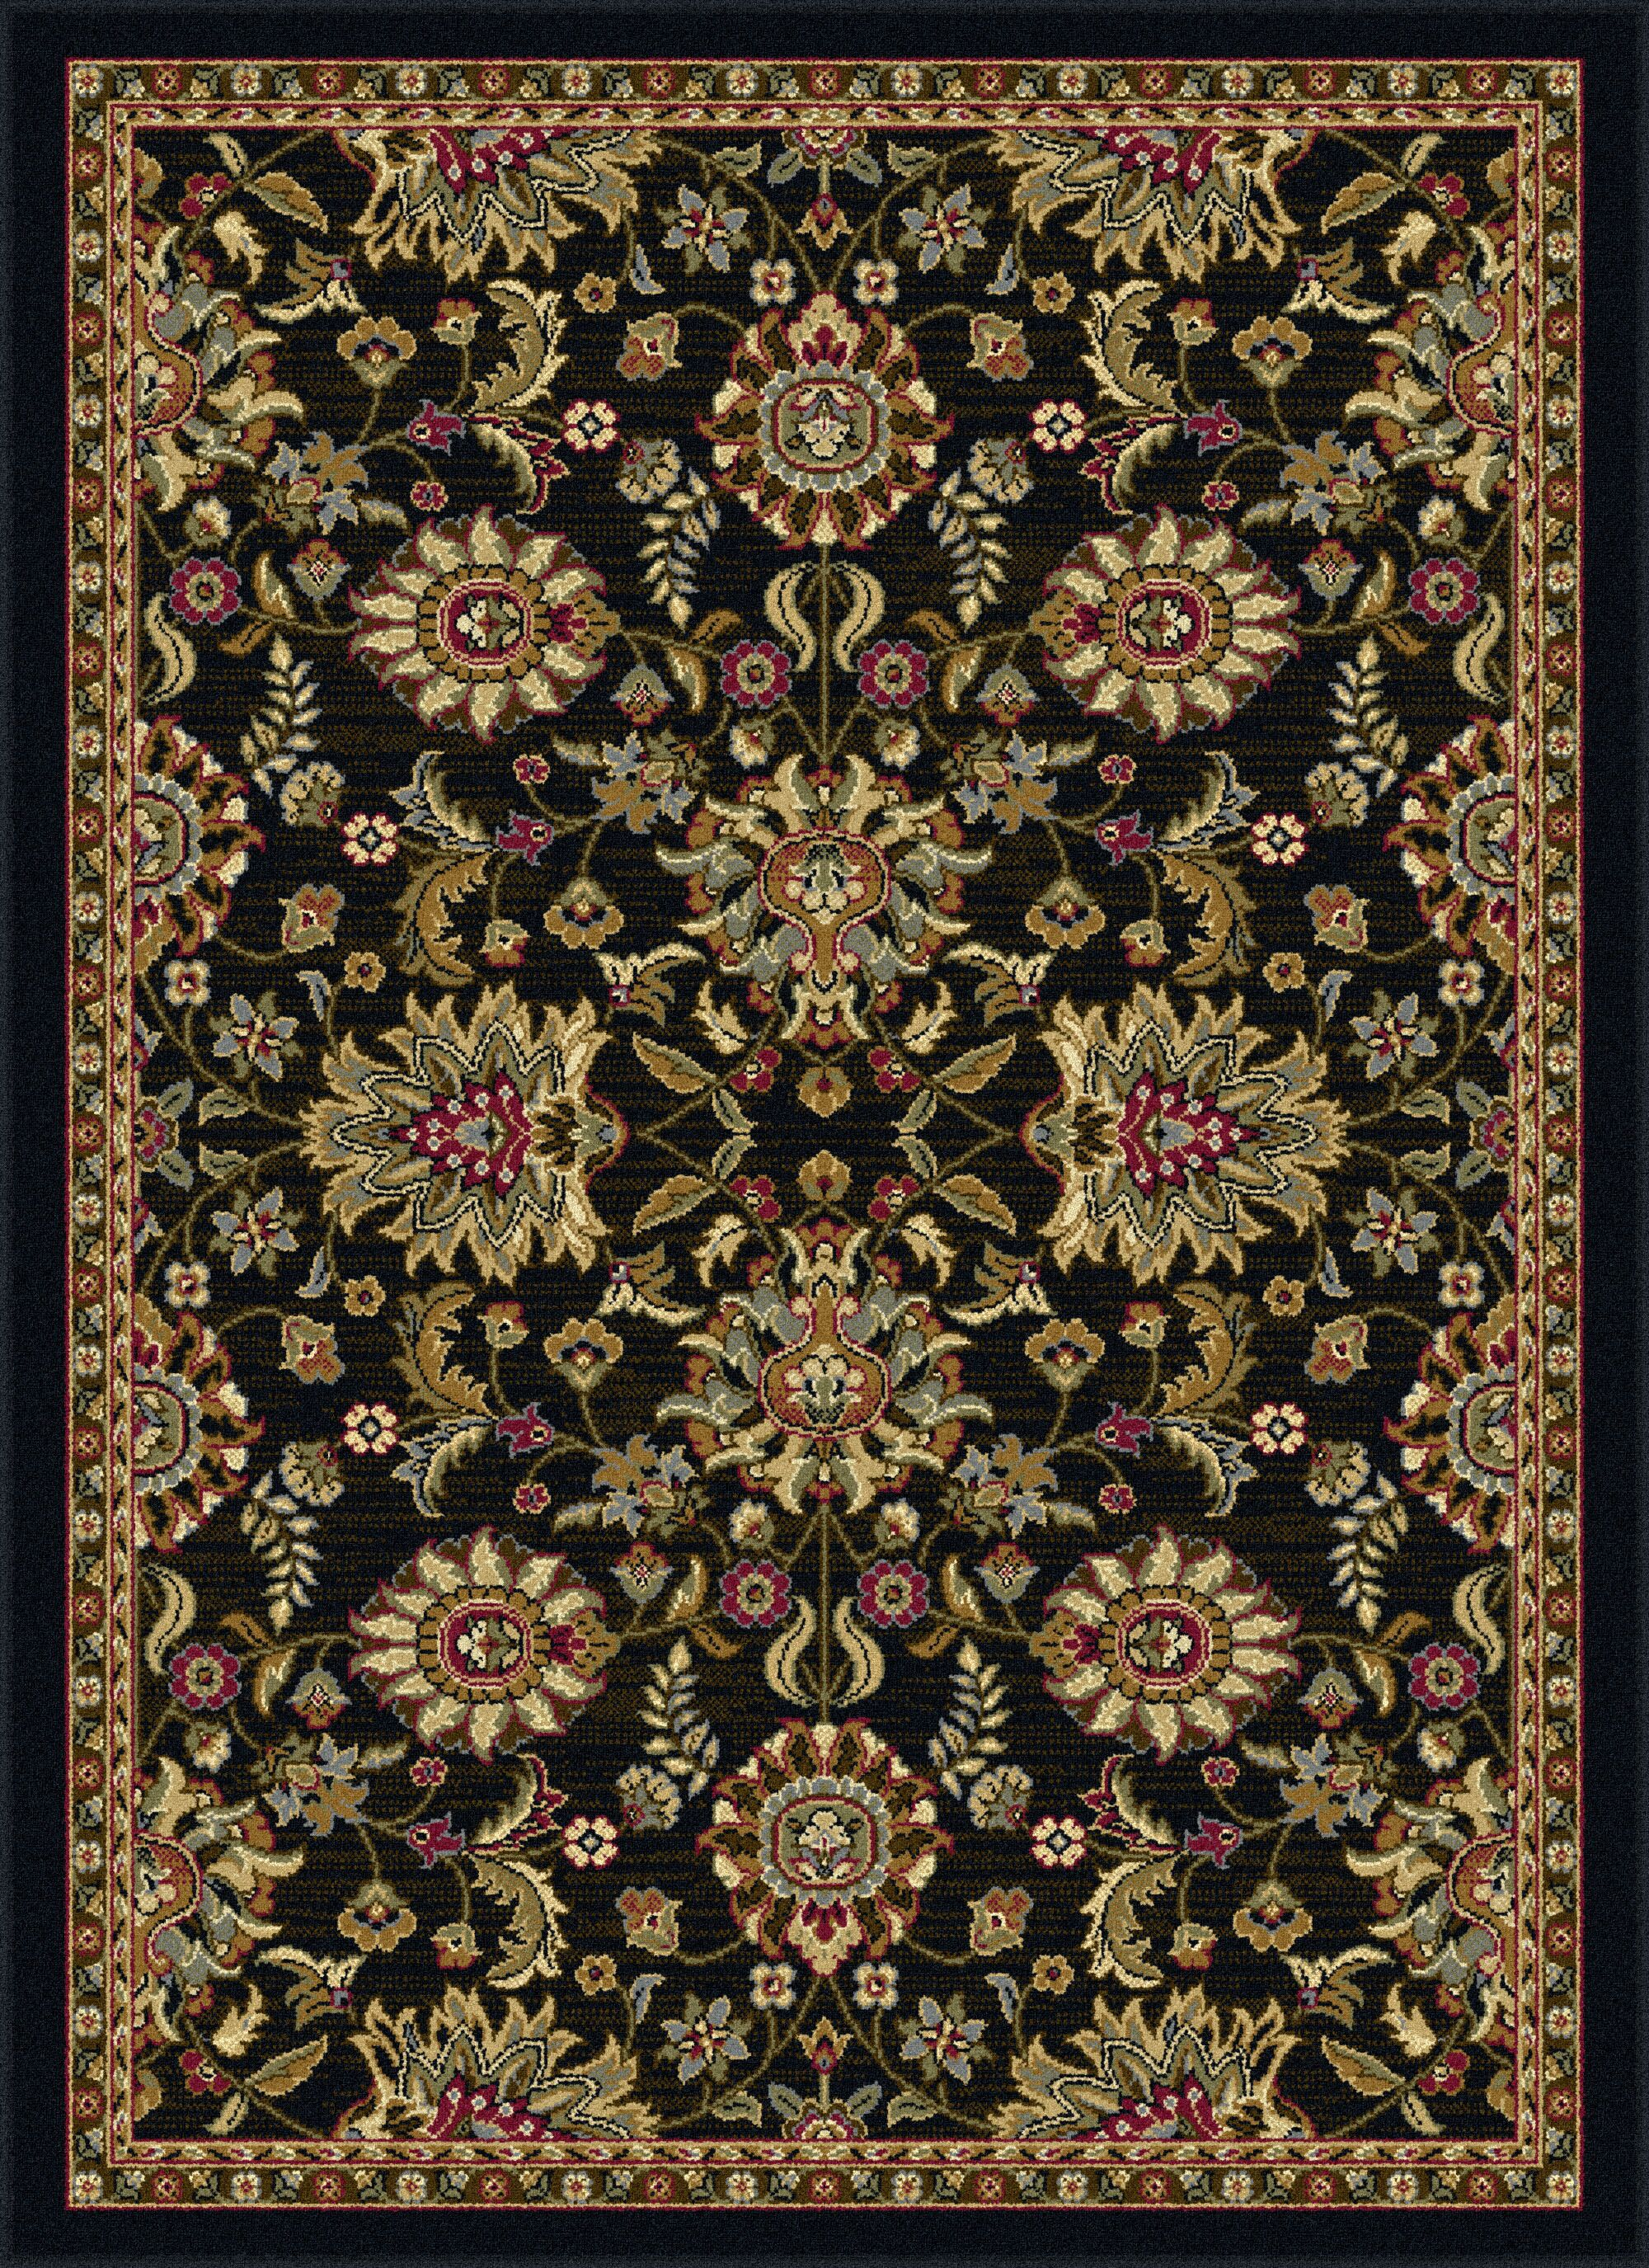 Pippins Black Area Rug Rug Size: 5'3'' x 7'3'' Oval